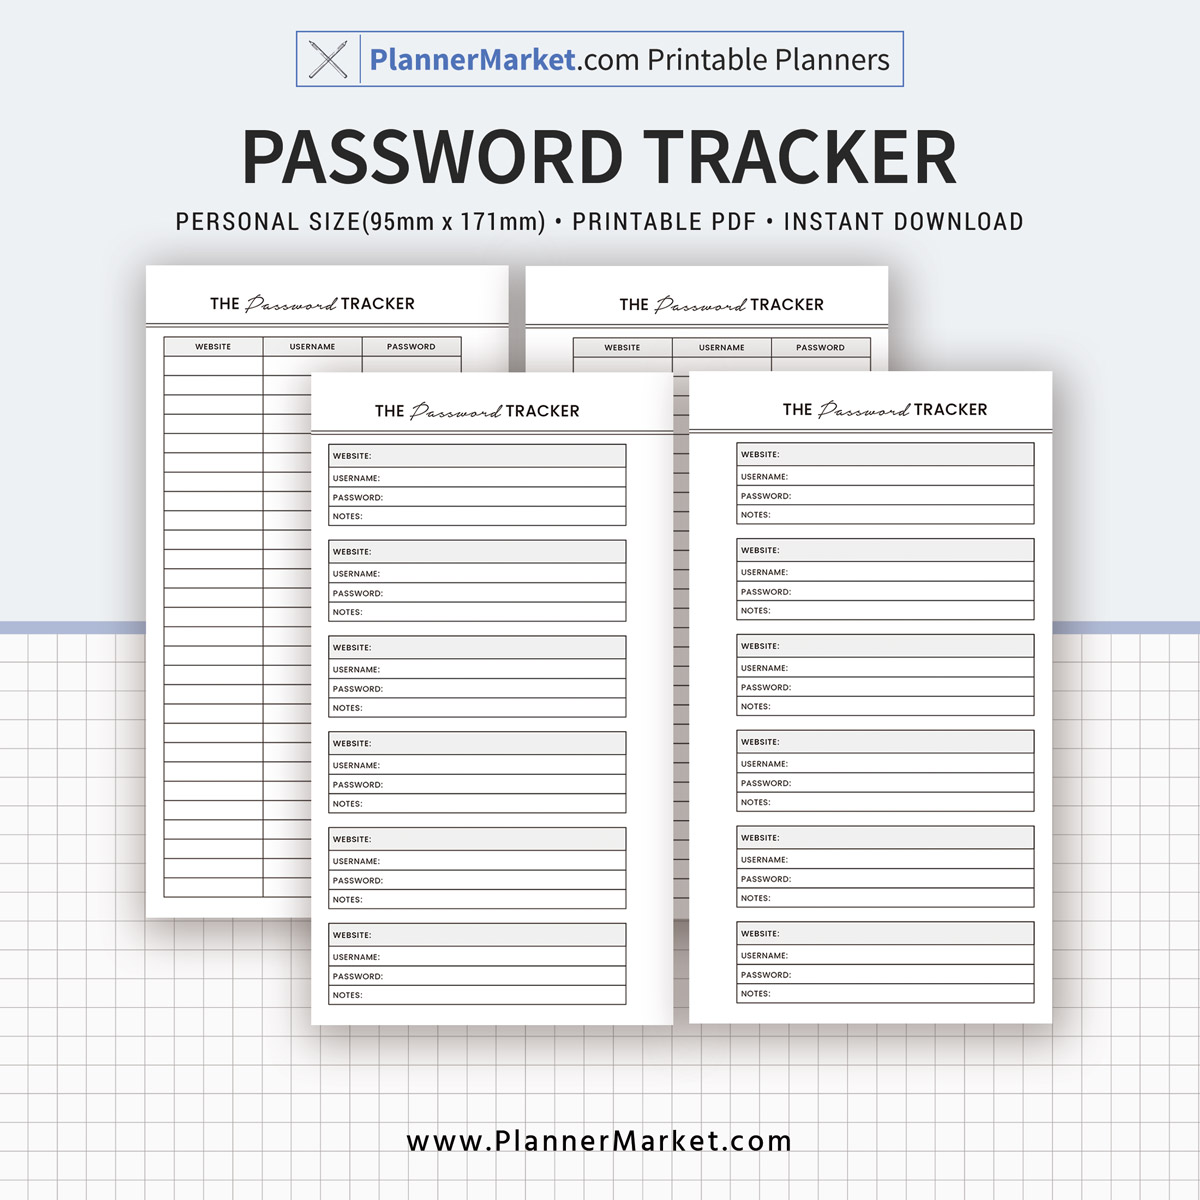 picture relating to Password Printable titled Pword Tracker Inserts, Planner 2019, Unique Dimensions, Planner Refill, Planner Binder, Printable Planner, Prompt Down load